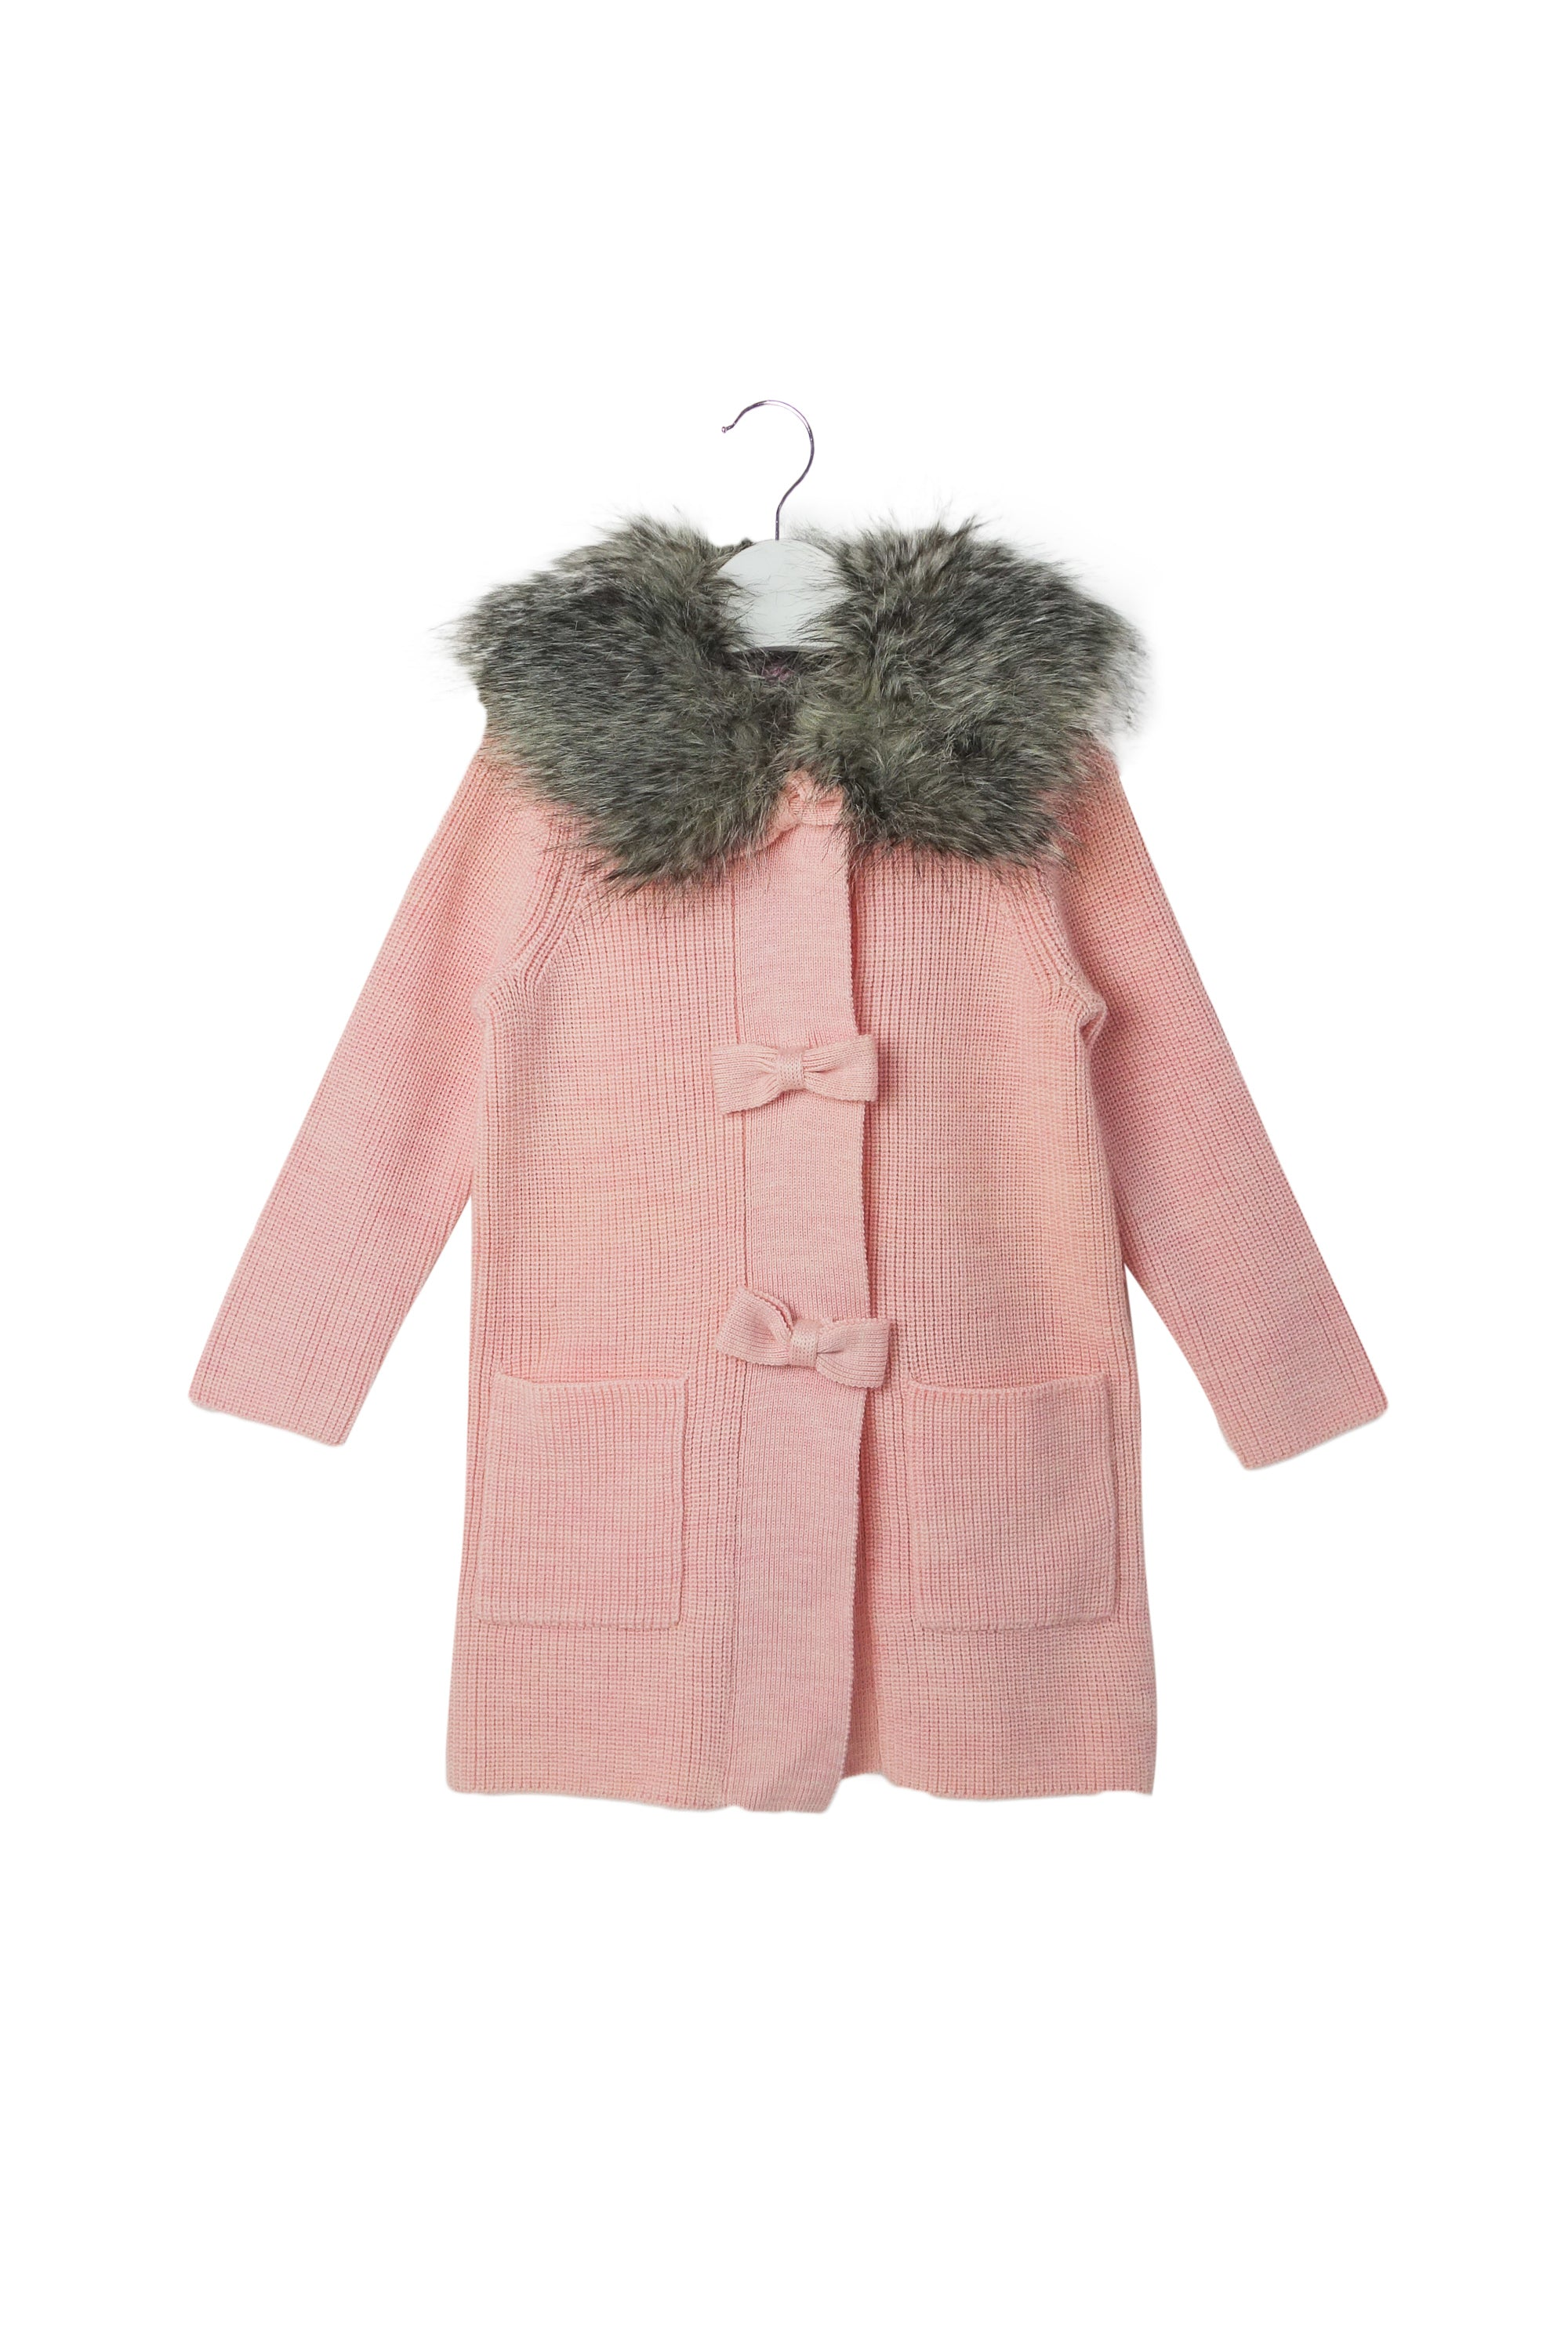 10003165 Nicholas & Bears Kids~Coat 2T at Retykle